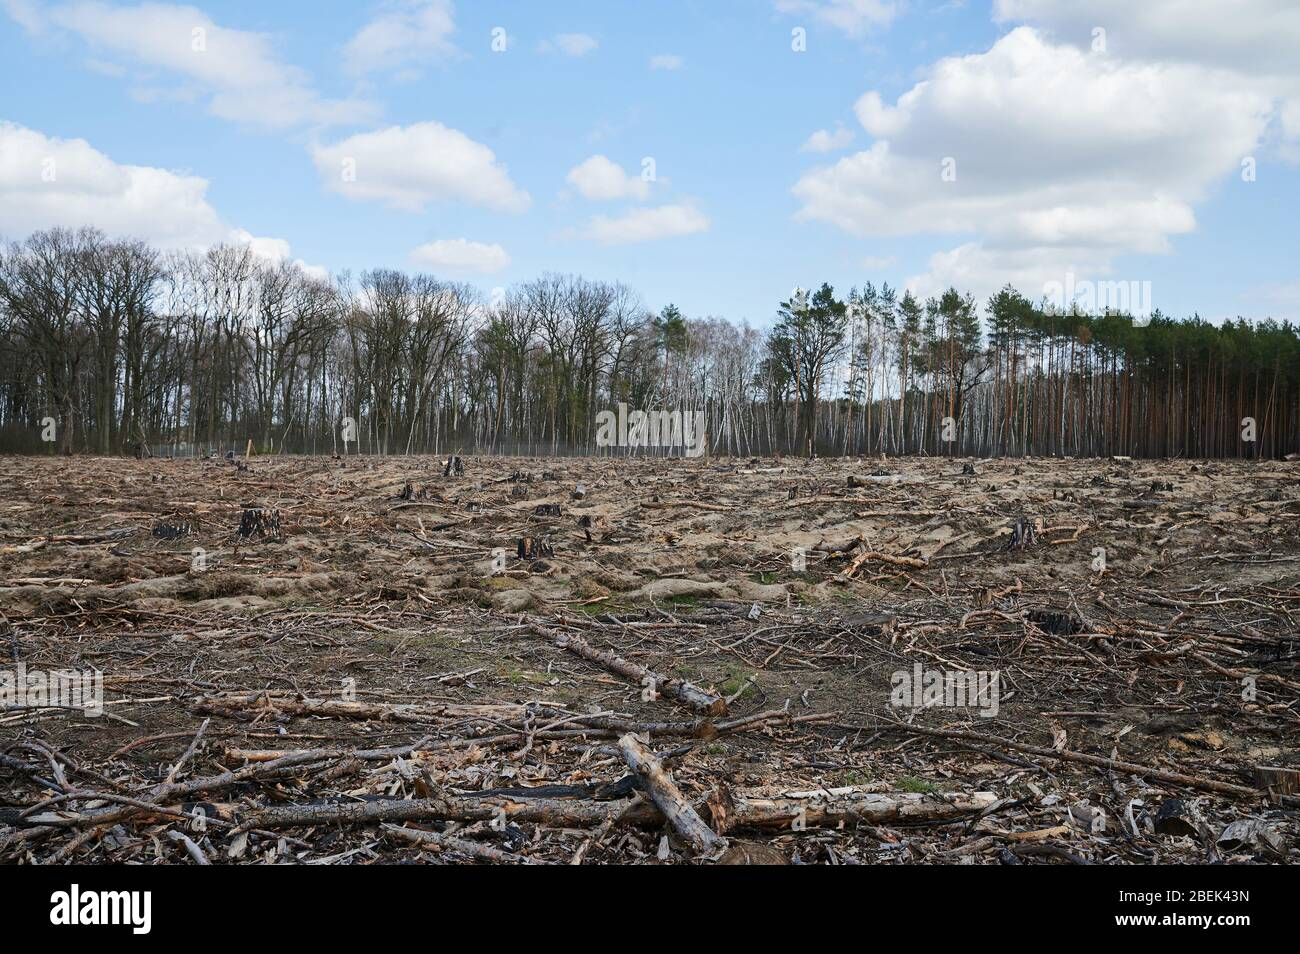 04 April 2020, Brandenburg, Märtensmühle: Burnt and charred branches and trunks lie on the forest floor. Between Hennickendorf and Märtensmühle in the district Nuthe Nieplitz, the forest fire raged in 2019. In the meantime, reforestation is being done step by step. Photo: Annette Riedl/dpa-Zentralbild/ZB Stock Photo